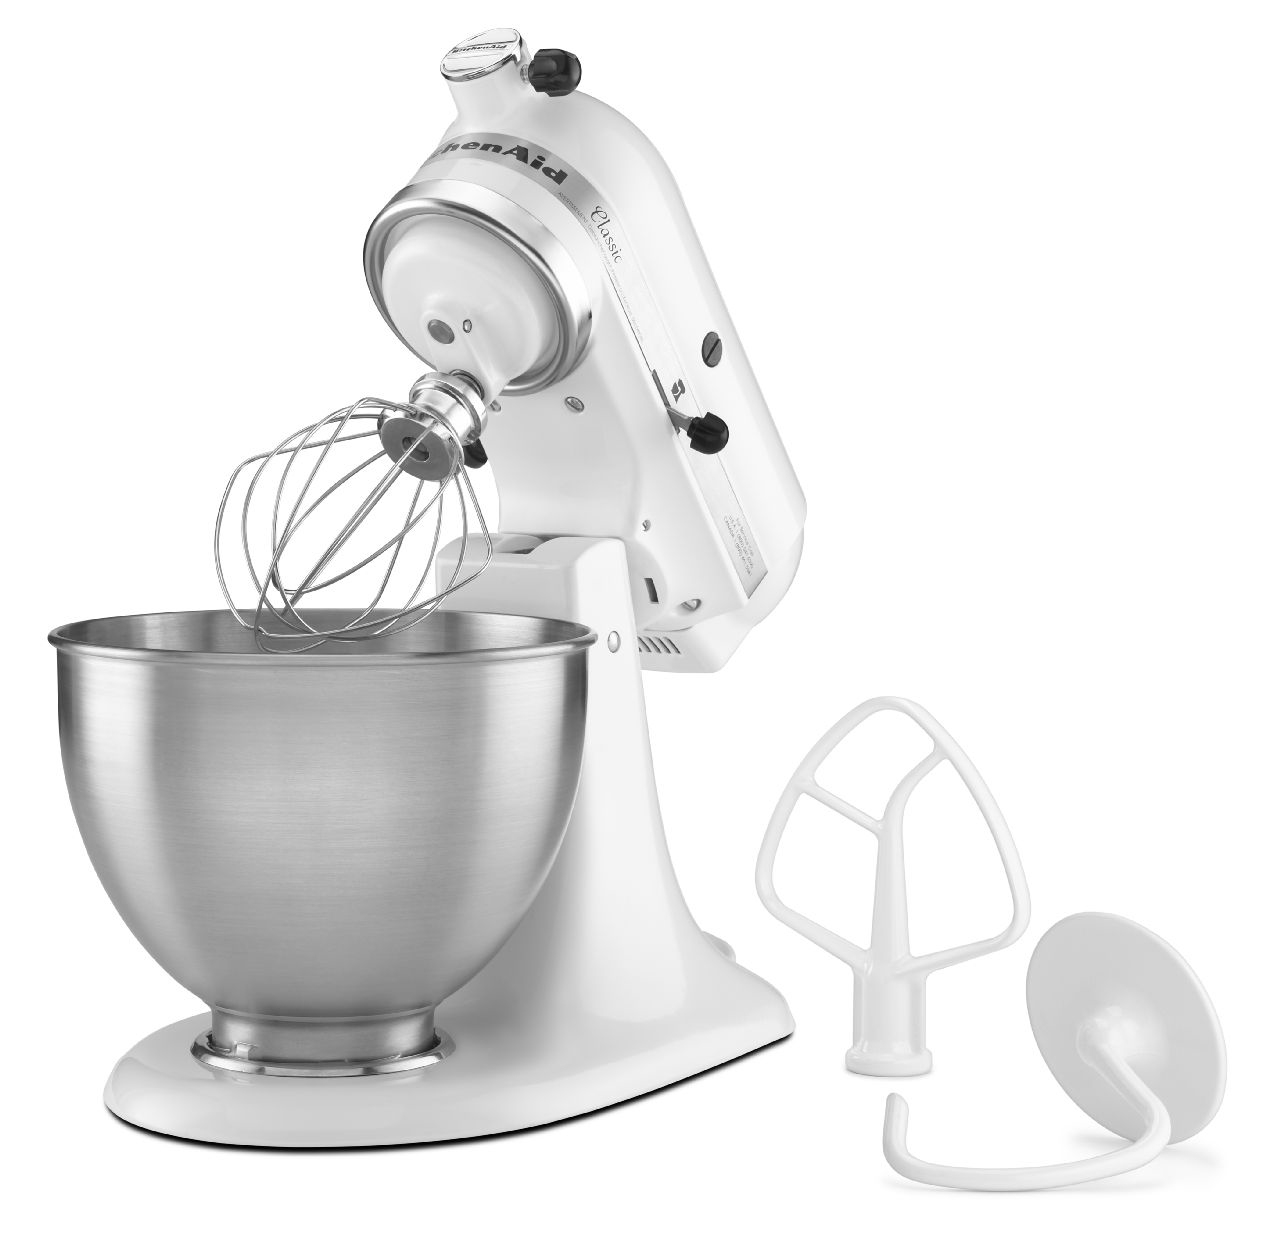 KitchenAid Classic Series White Stand Mixer - K45SSWH